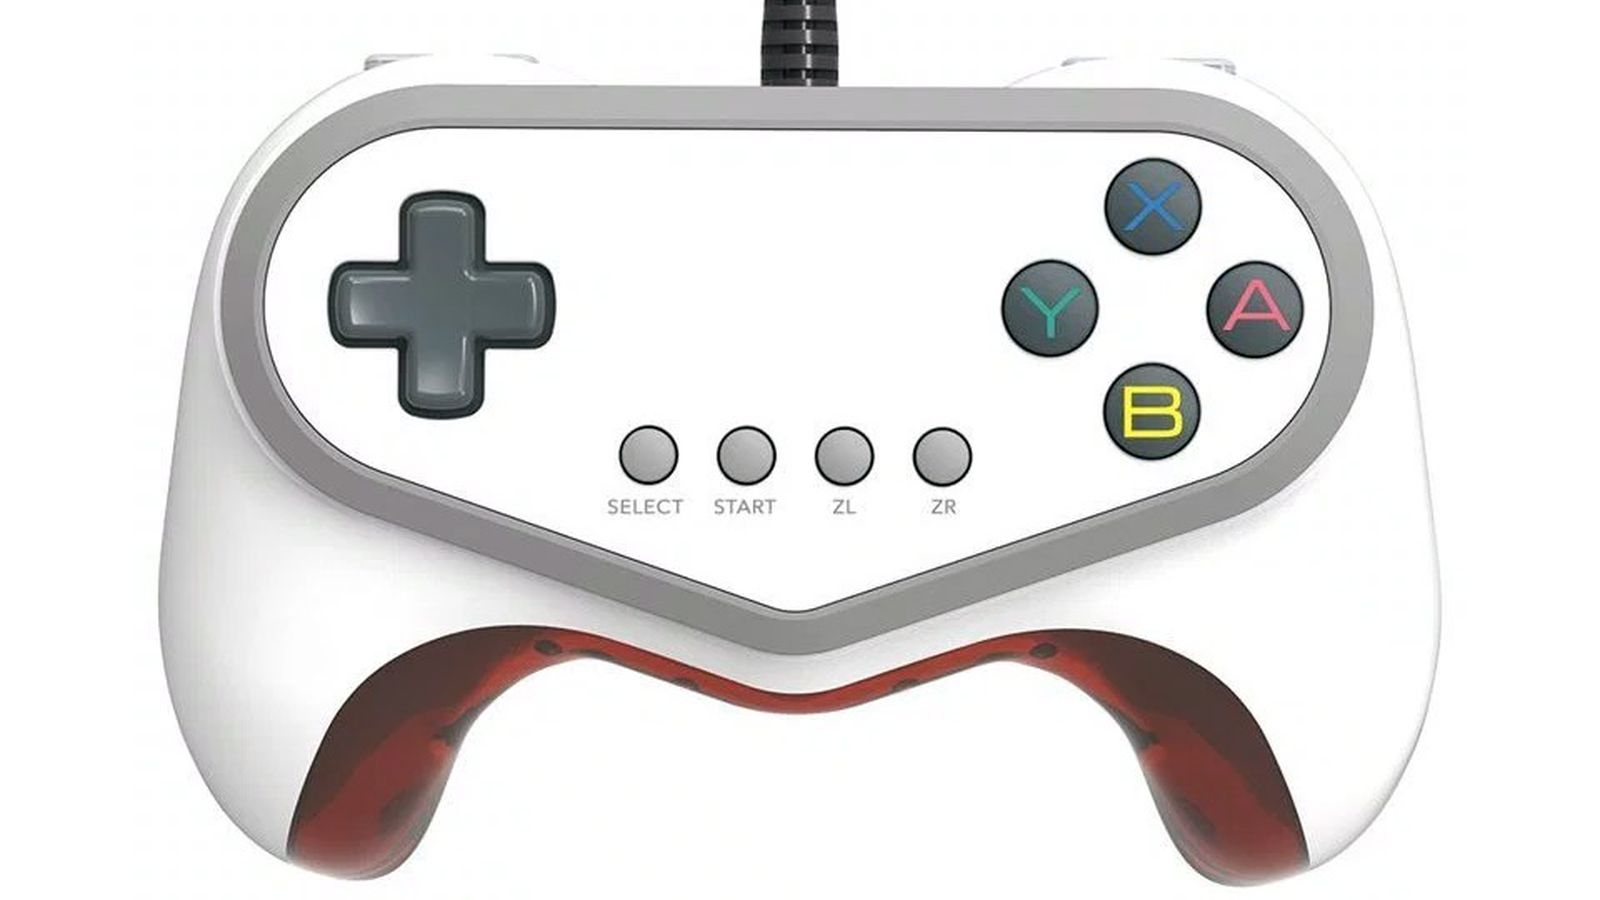 The Pokkén Tournament pad makes for a good, cheap Switch controller